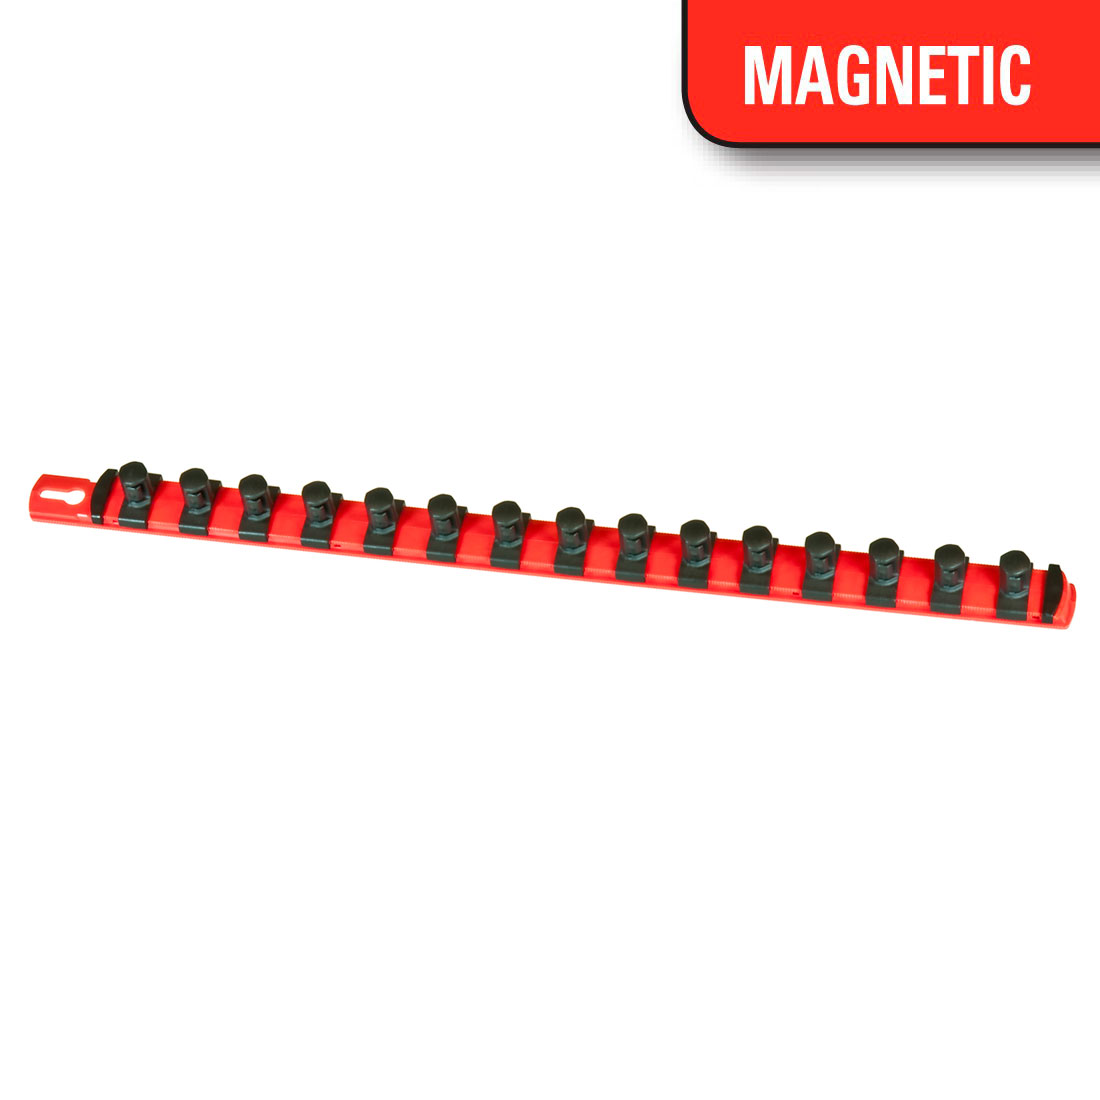 Red. 1//2-inch Drive Magnetic Socket Tray Stores up to 22 sockets